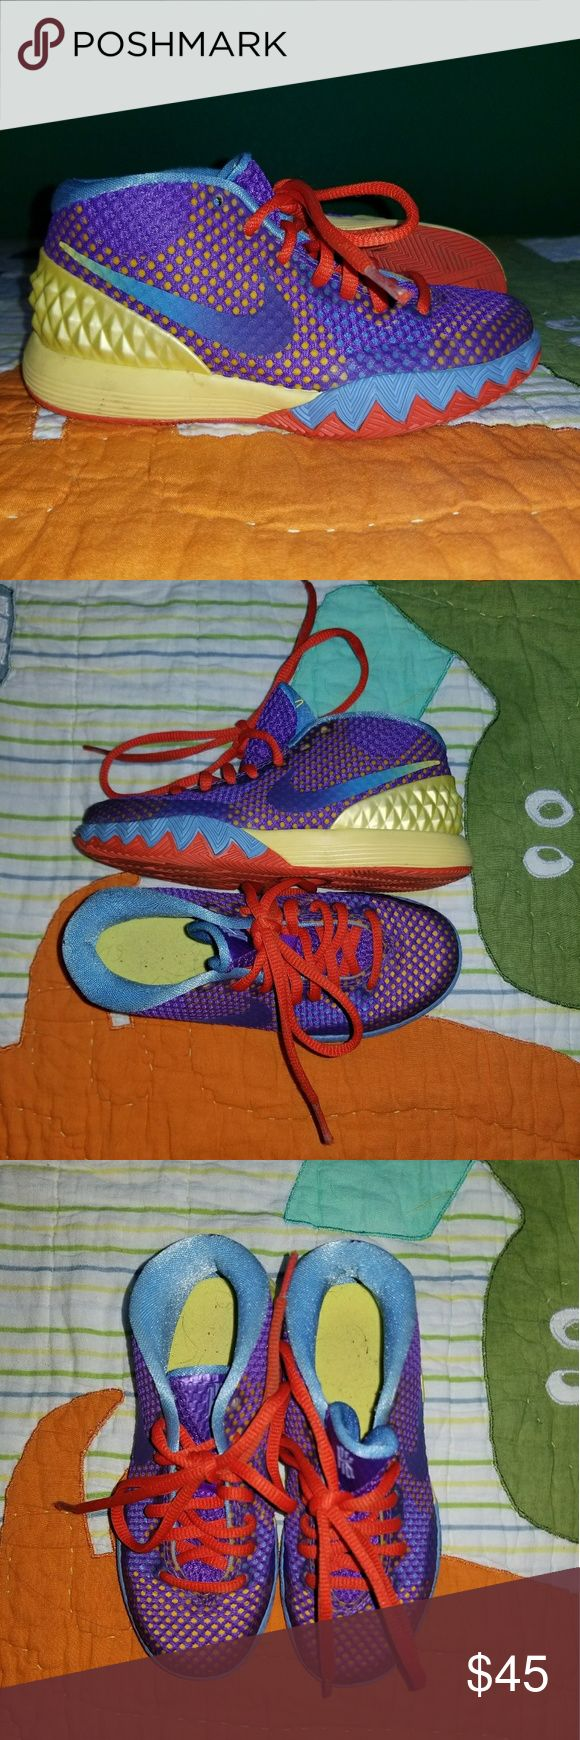 Nike Kyrie 1's Kyrie Irving NIKE basketball shoes. These are childrens shoes. Gently used, AMAZING CONDITION. Nike Shoes Sneakers